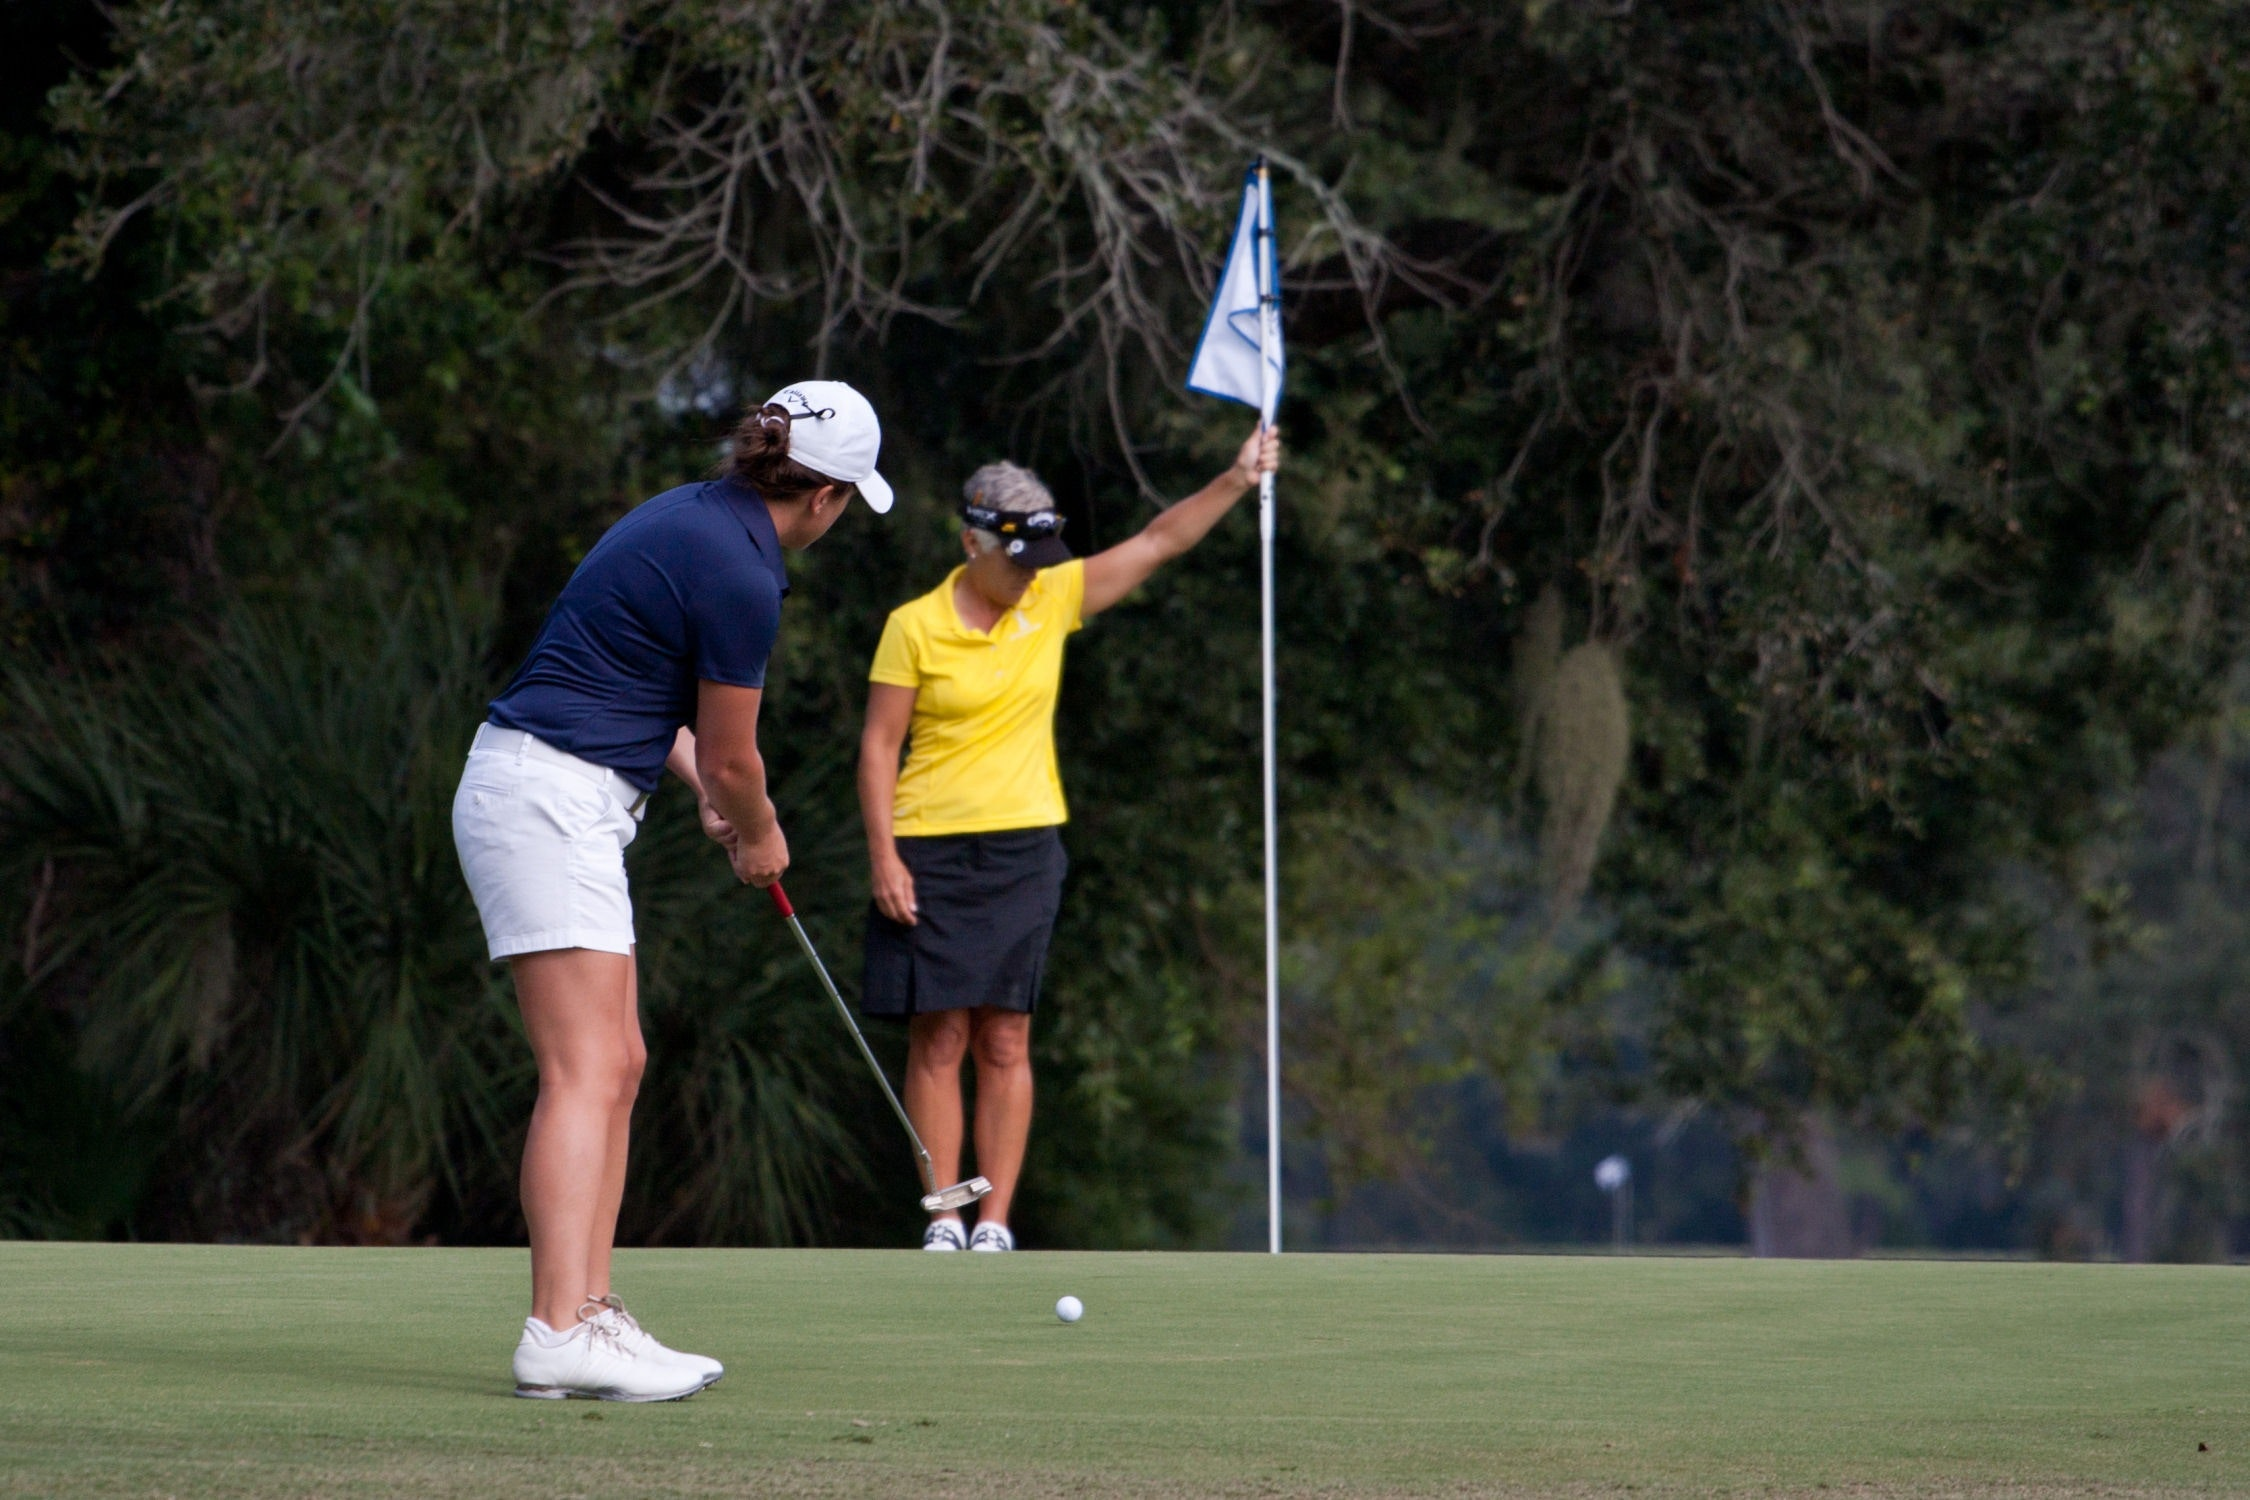 When Should I Get a Golf Massage? - You can get a relaxing massage almost anytime, but for golfers you might not want to be too relaxed on the first tee. Deep massages at Tampa Bay Sports & Medical Massage should be done well before a tee time-- at least 48 hours is ideal.If you get one right before a round, you might be too sore to play, or your muscles won't perform optimally.